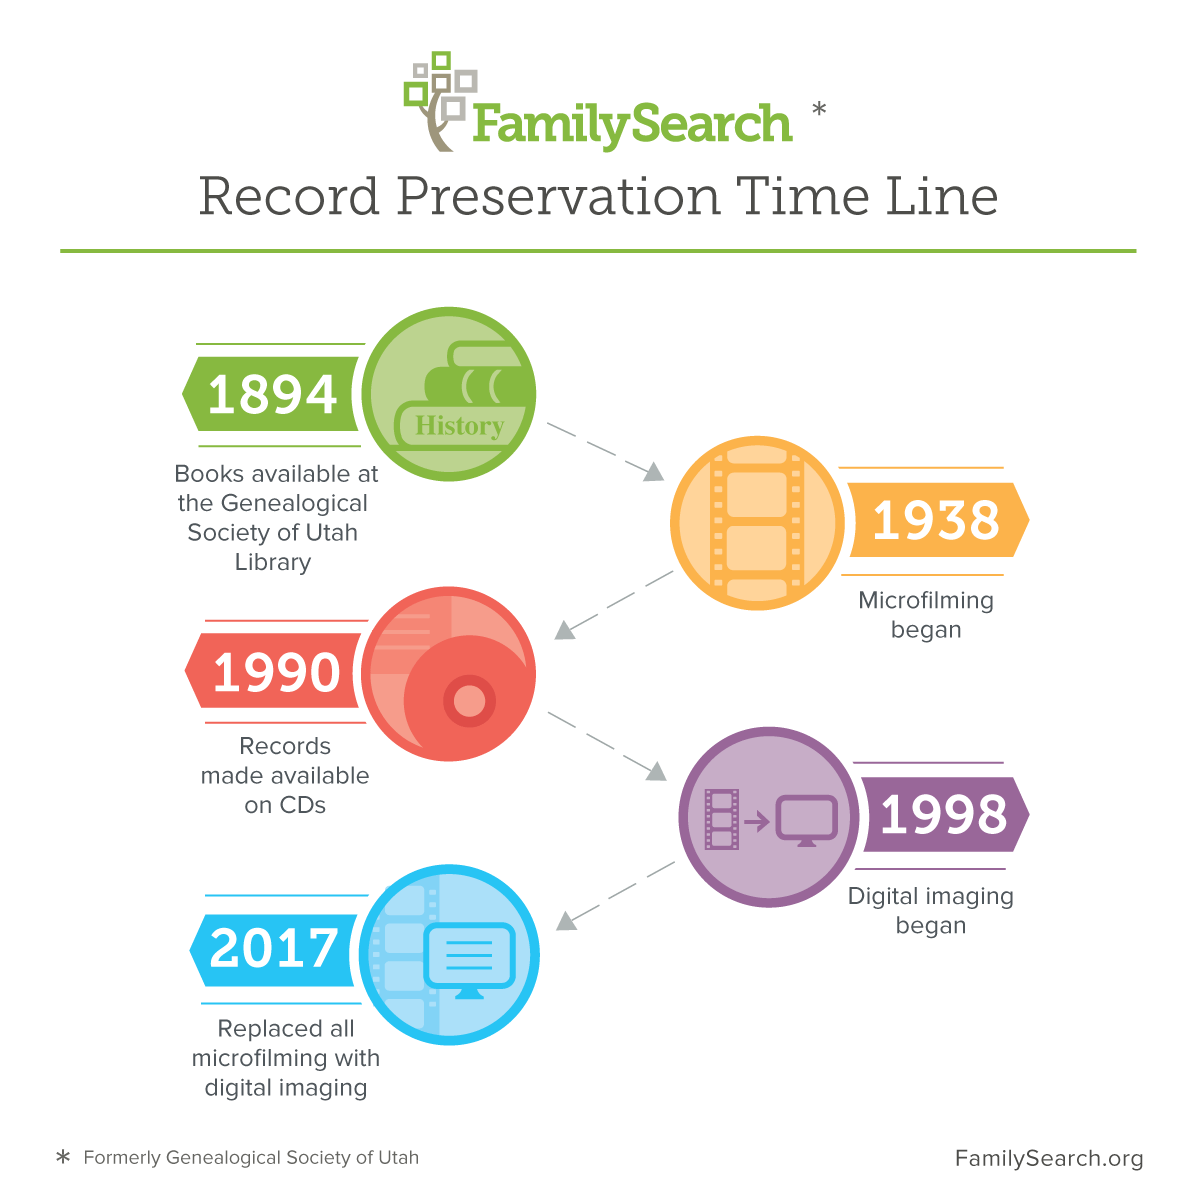 FamilySearch, aka Genealogical Society of Utah, has been making the world's historical genealogical records more accessible for 125 years.